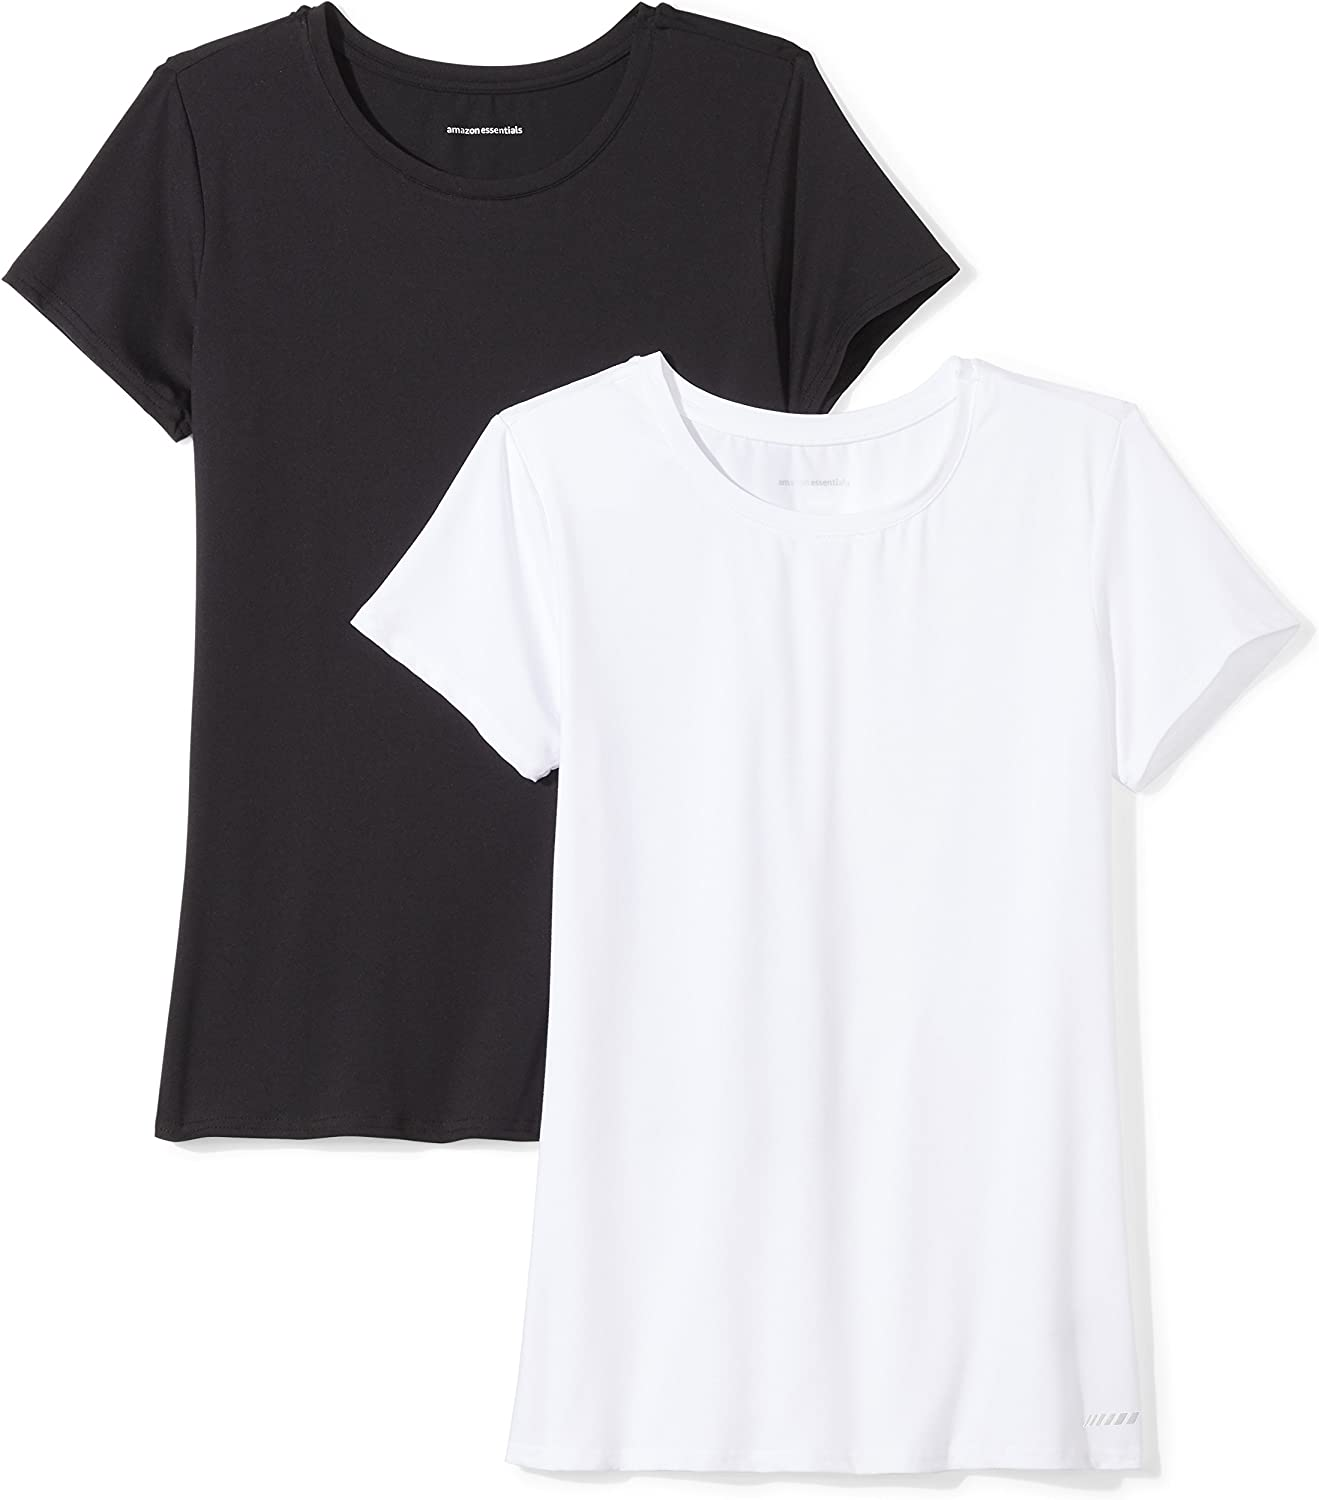 Amazon Essentials Women's 2-Pack Tech Stretch Short-Sleeve Crewneck T-Shirt